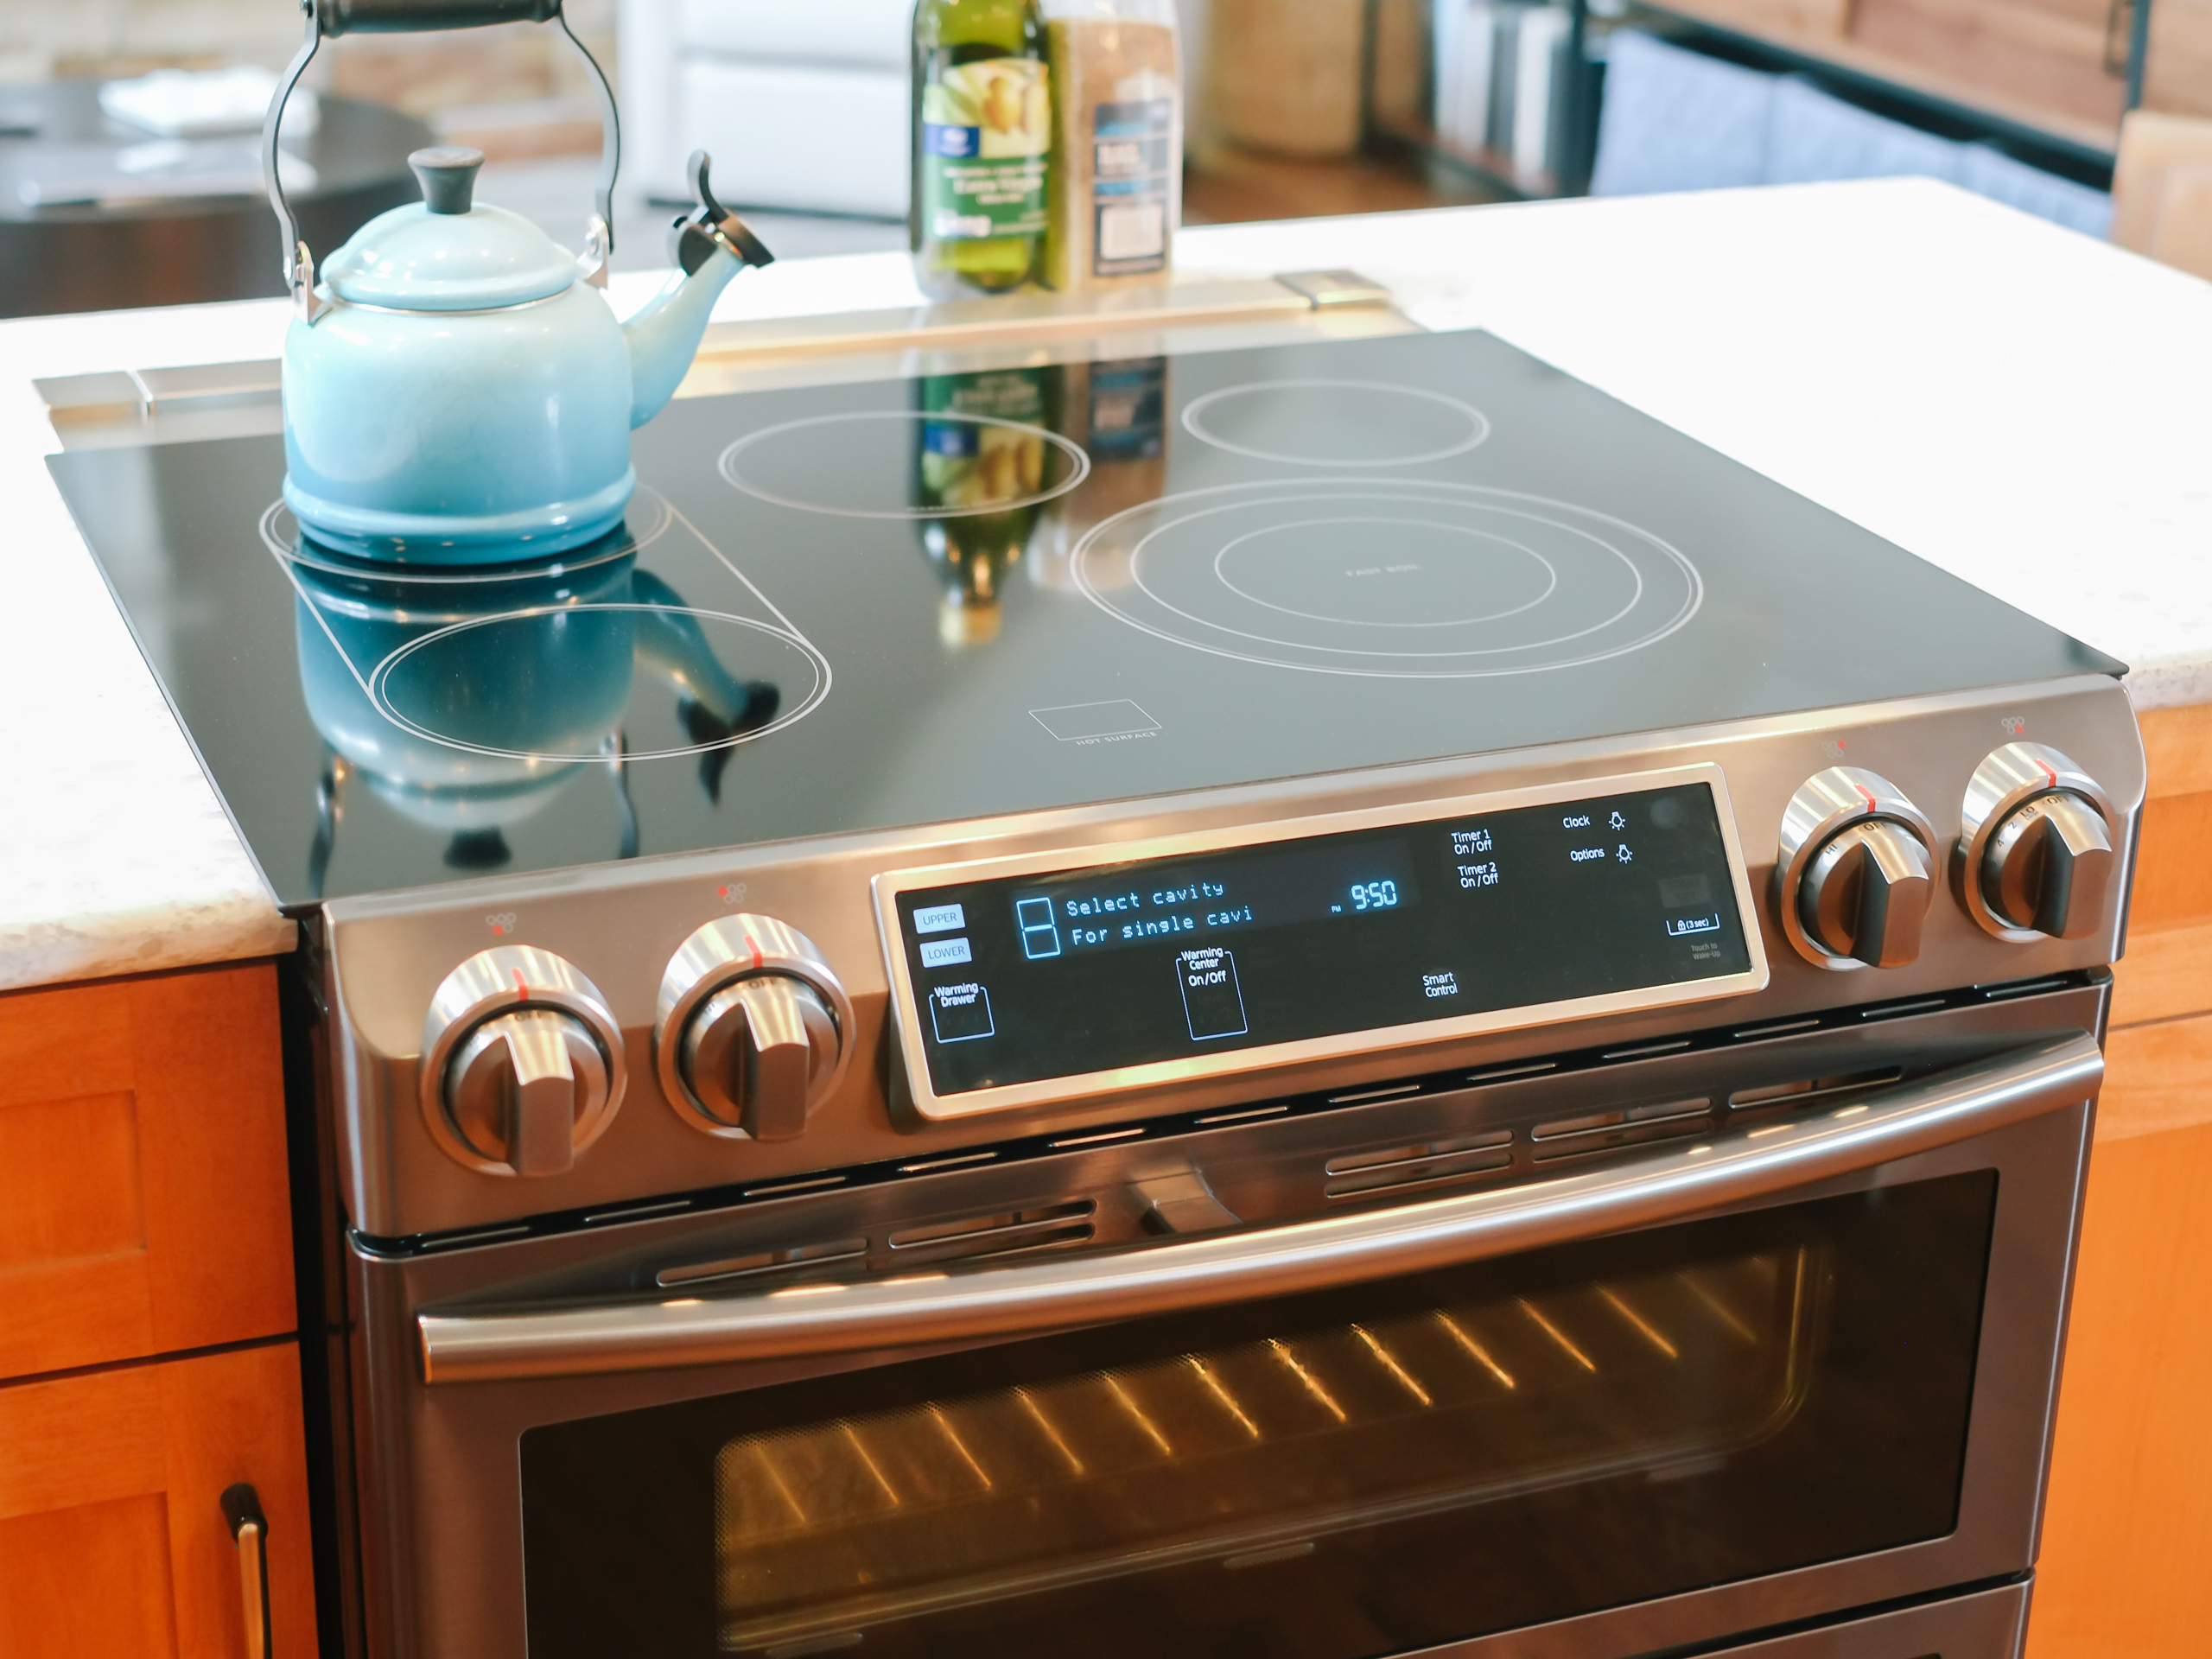 Samsung's Wi-Fi oven has some sizzle, but not a lot of bang